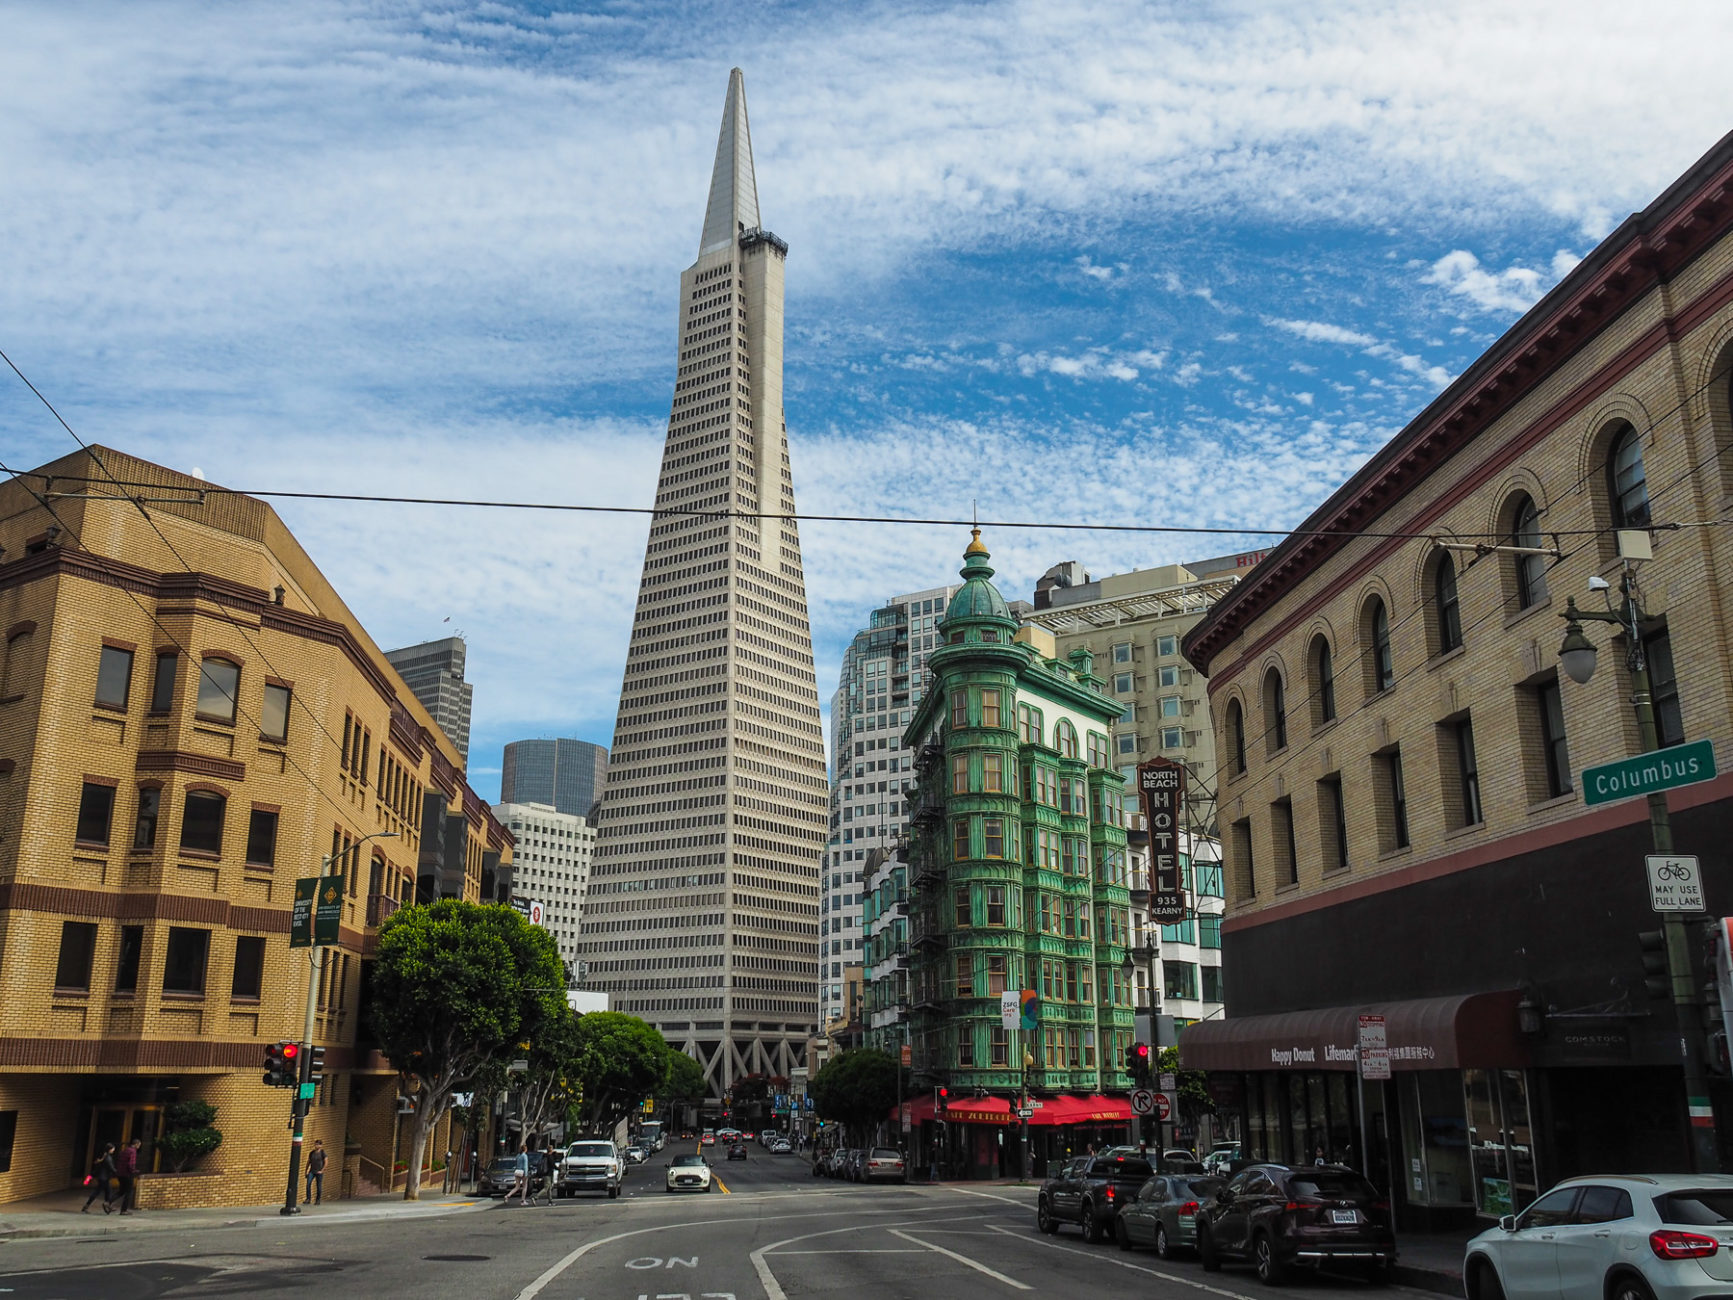 Columbus Tower und Transamerica Pyramid